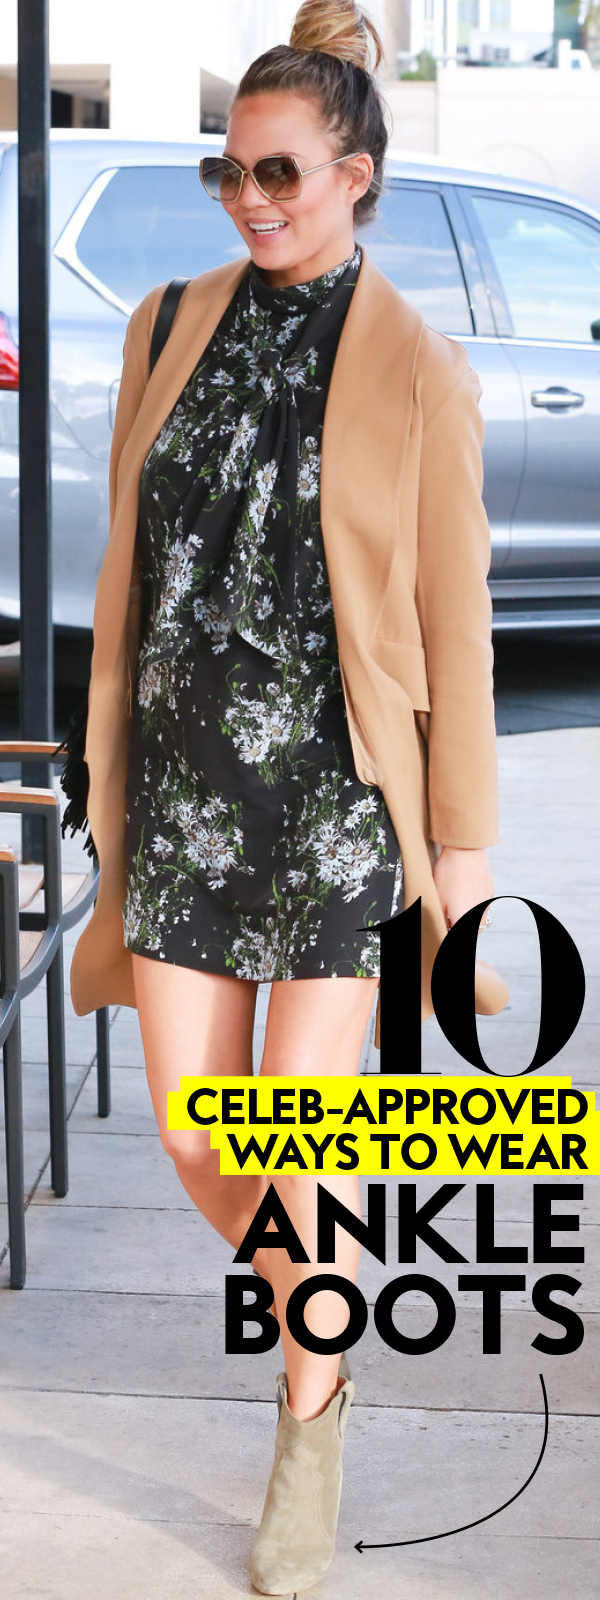 How To Wear Ankle Boots Celebrities In Ankle Boots